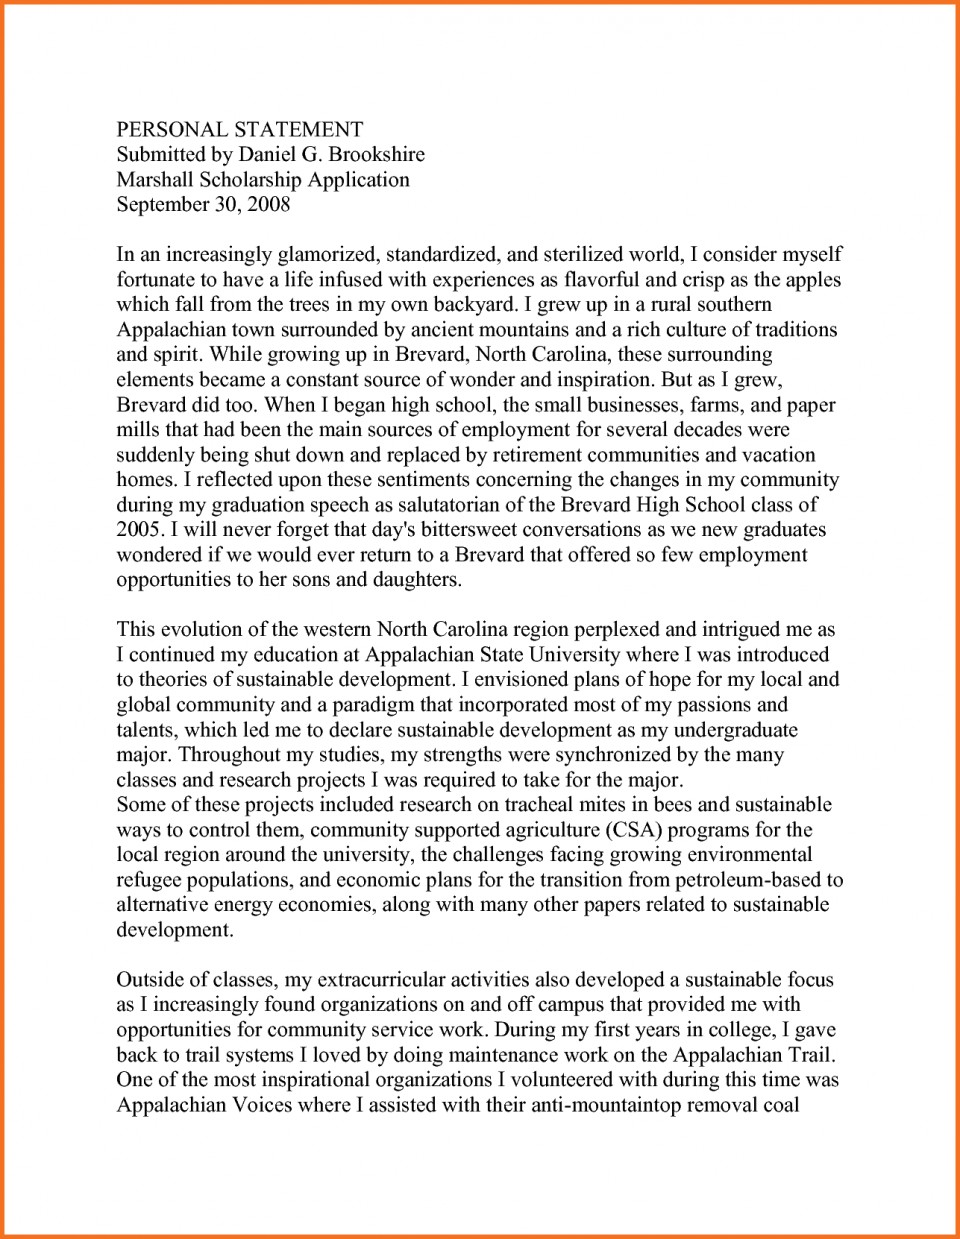 006 Scholarship Application Essay Samples Artresume Sample Personal Statement Mba Template Nsvwiupr Engineering Nursing Example Staggering Tips College Ideas 960